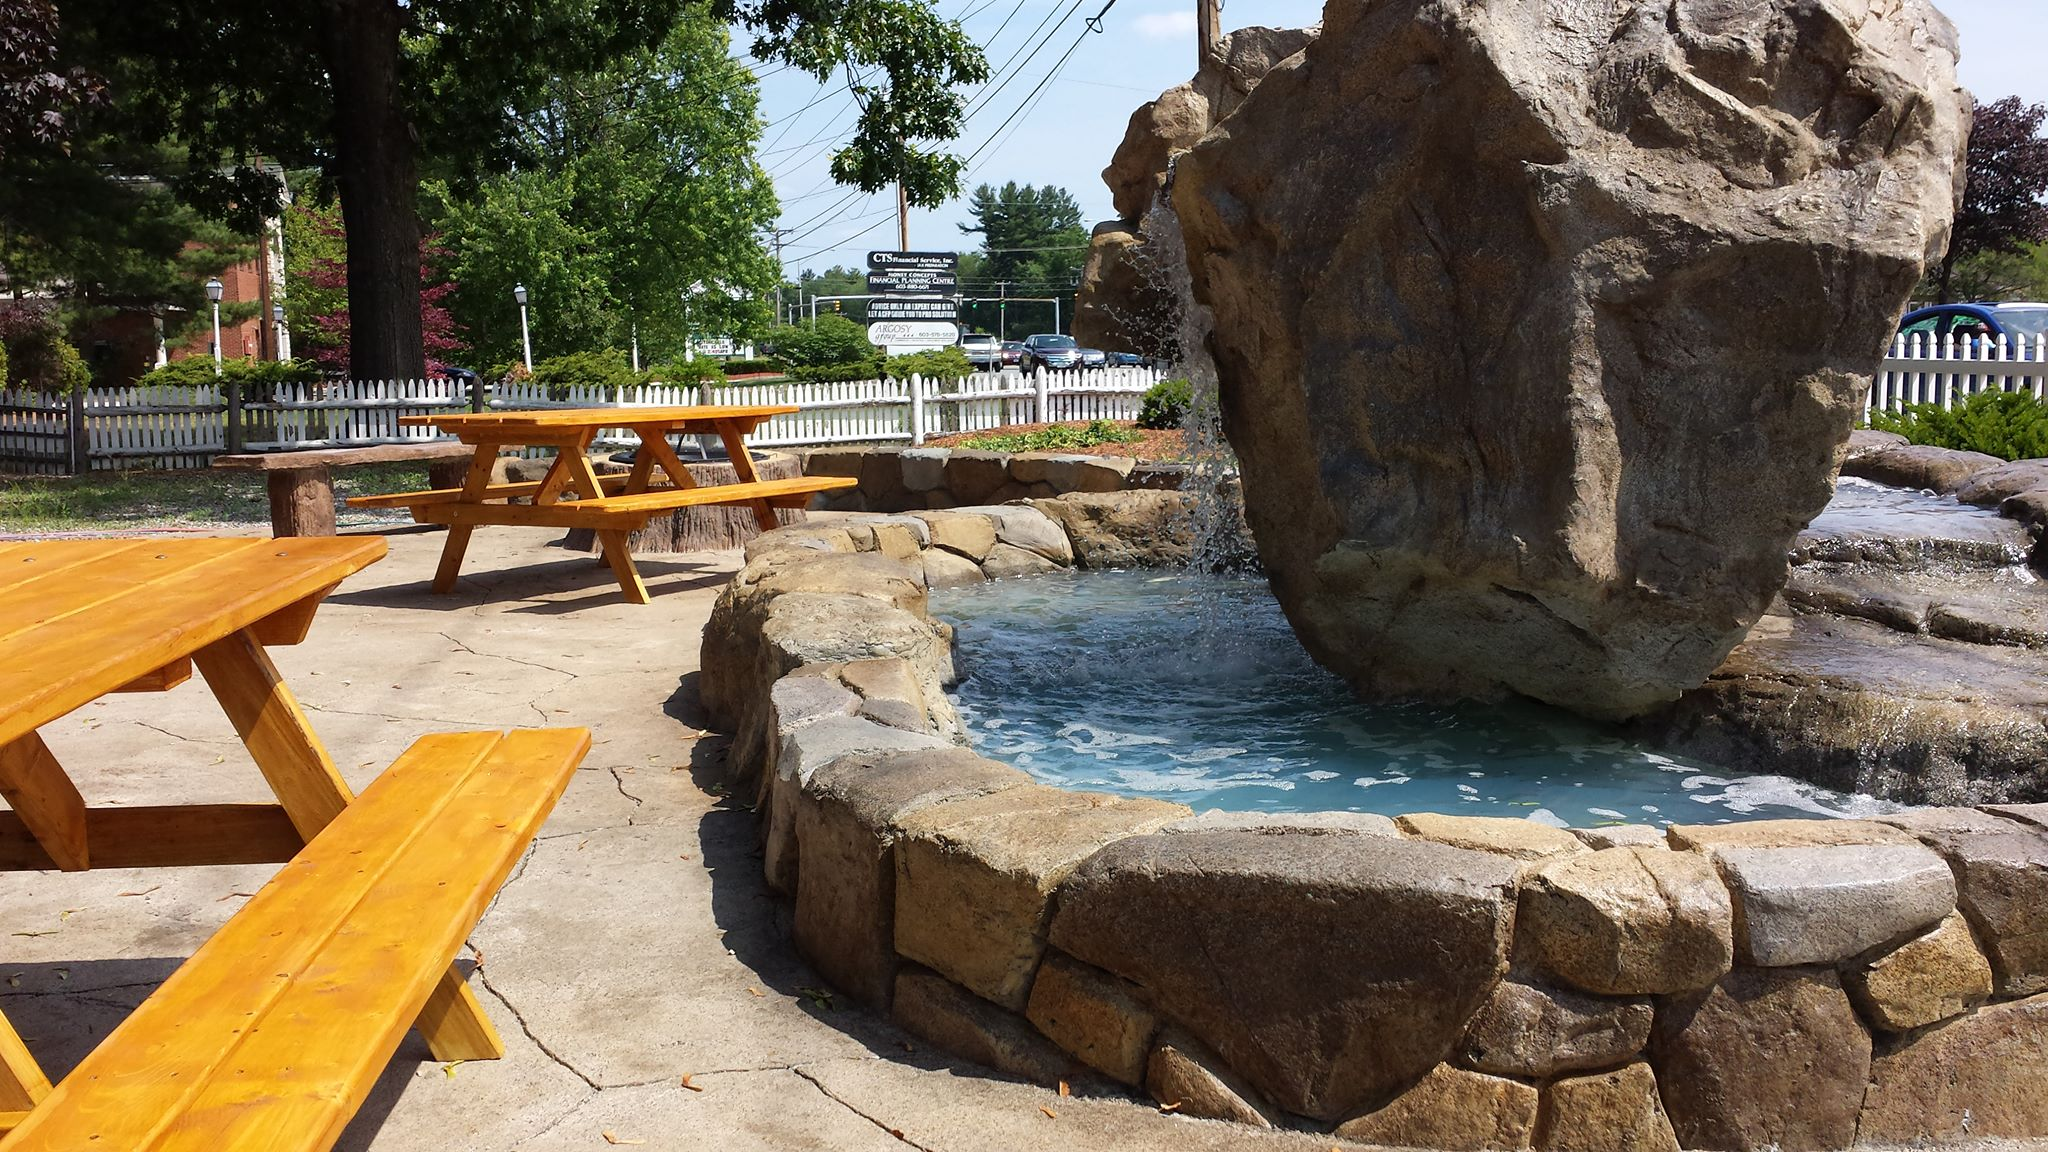 Bentley's Roast Beef exterior seating and water feature